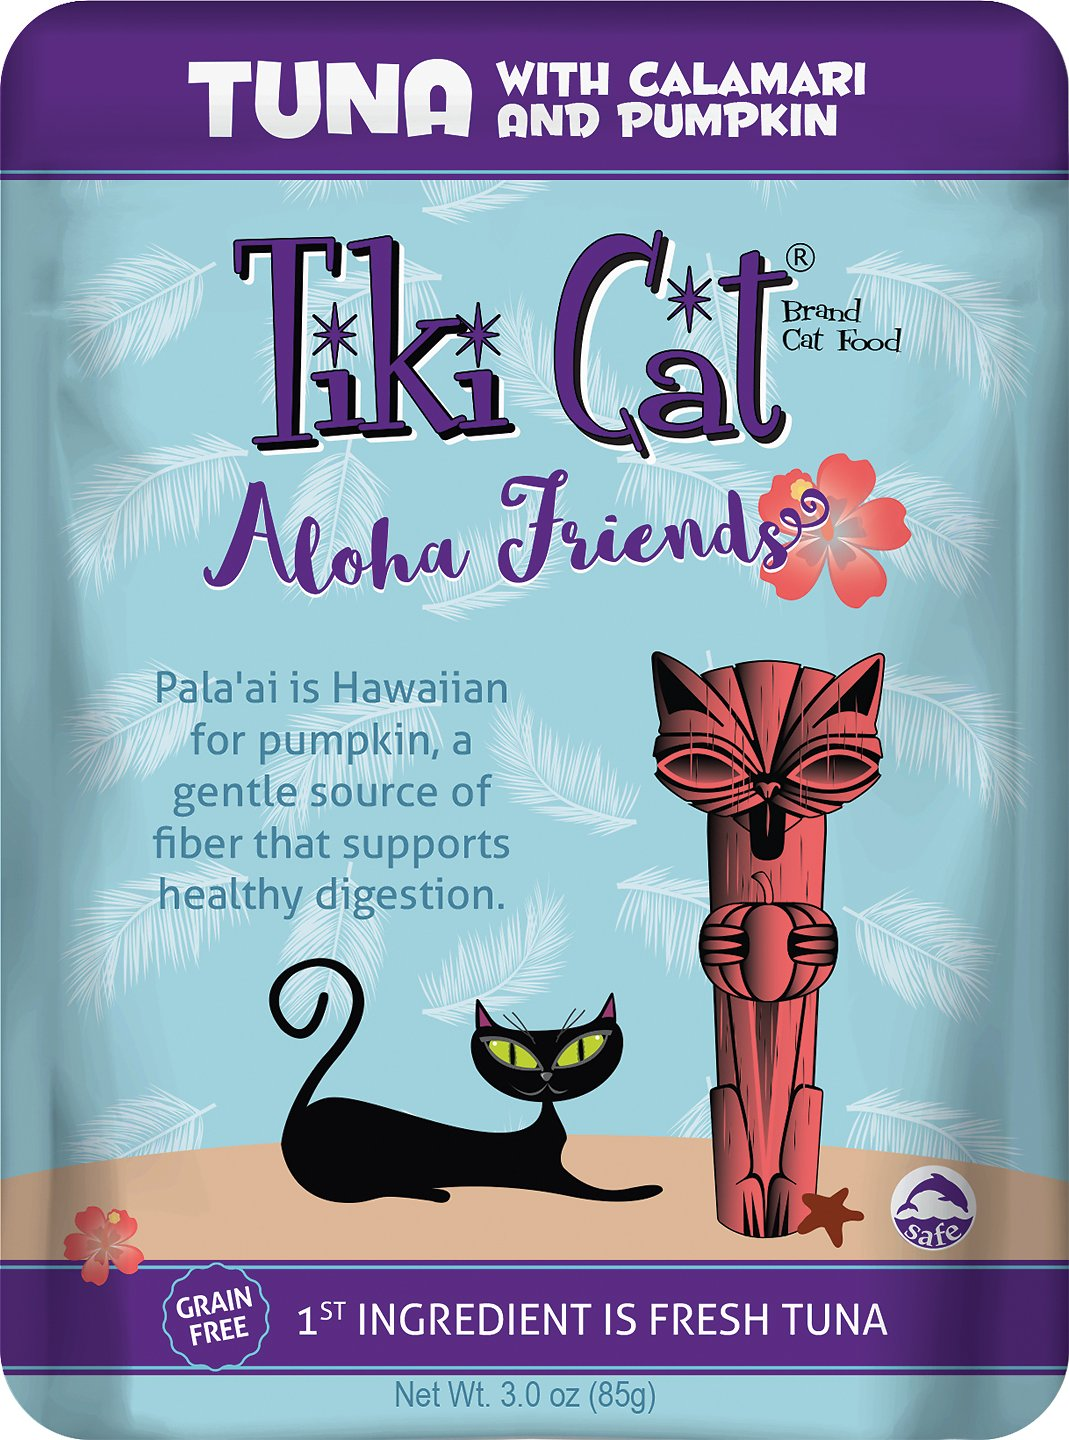 Tiki Cat Aloha Friends Tuna with Calamari & Pumpkin Grain-Free Wet Cat Food, 5.5-oz